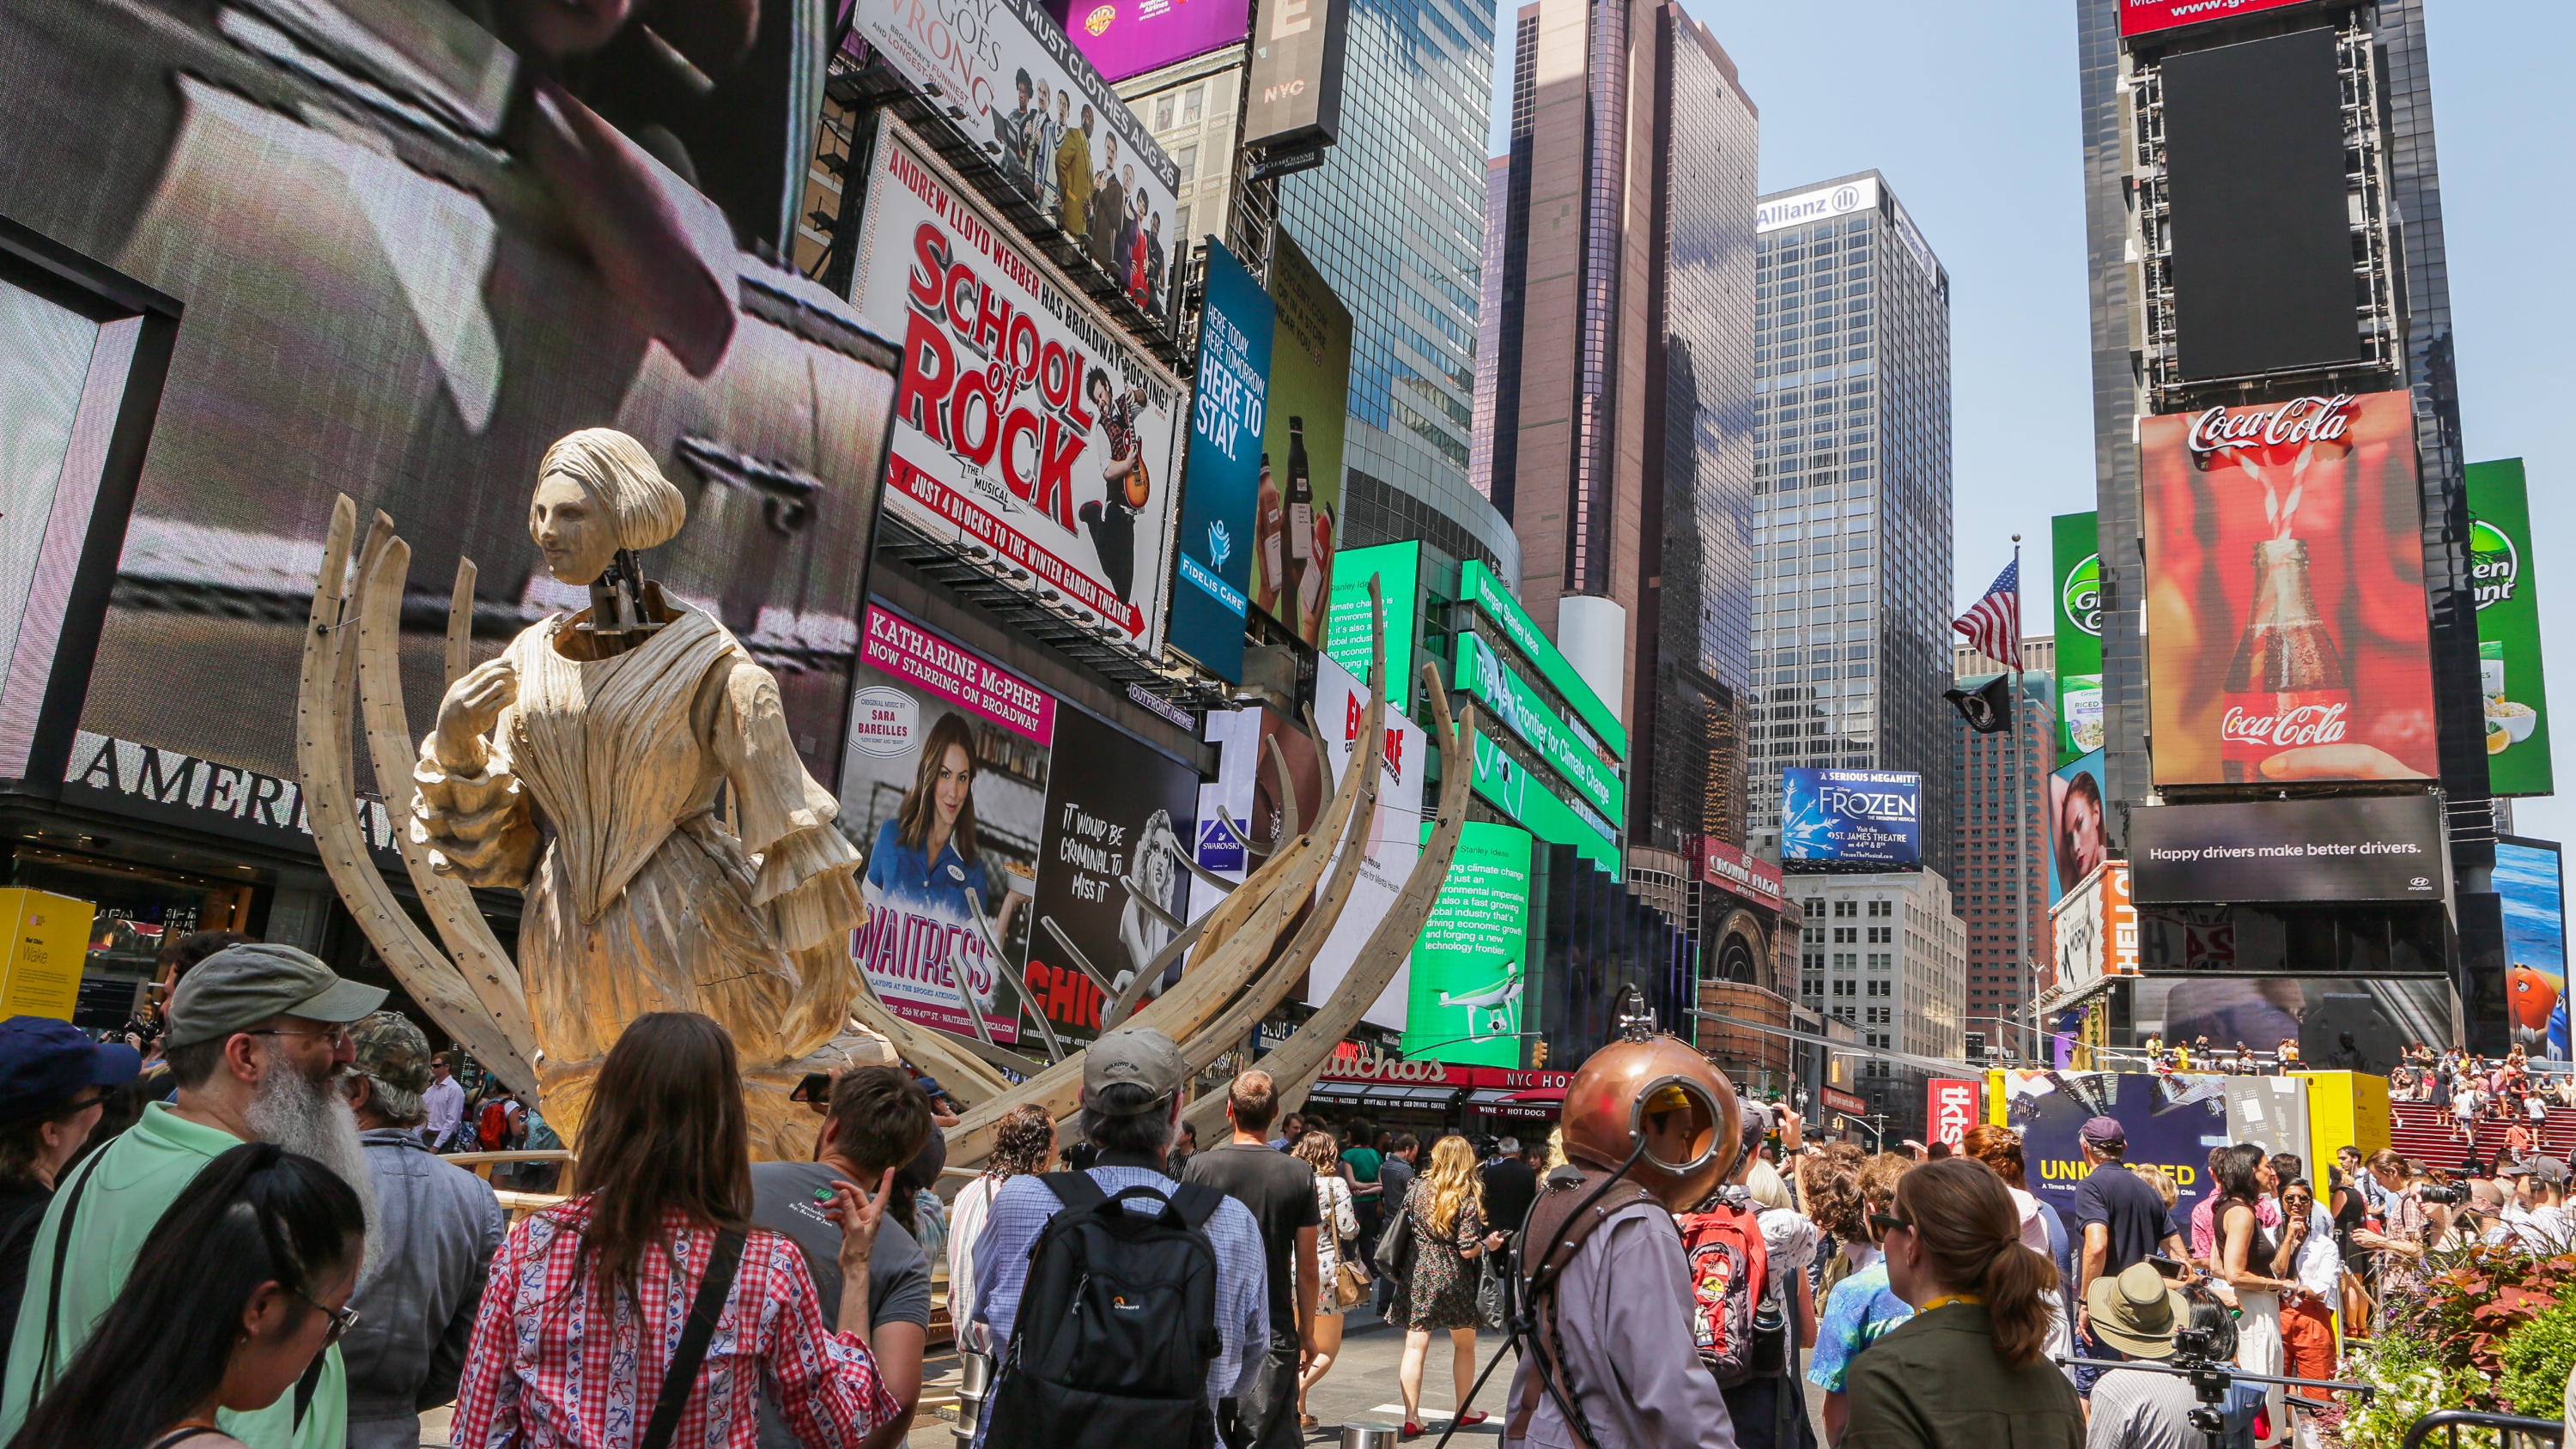 Mel Chin AR Unmoored Hololens Art Times Square